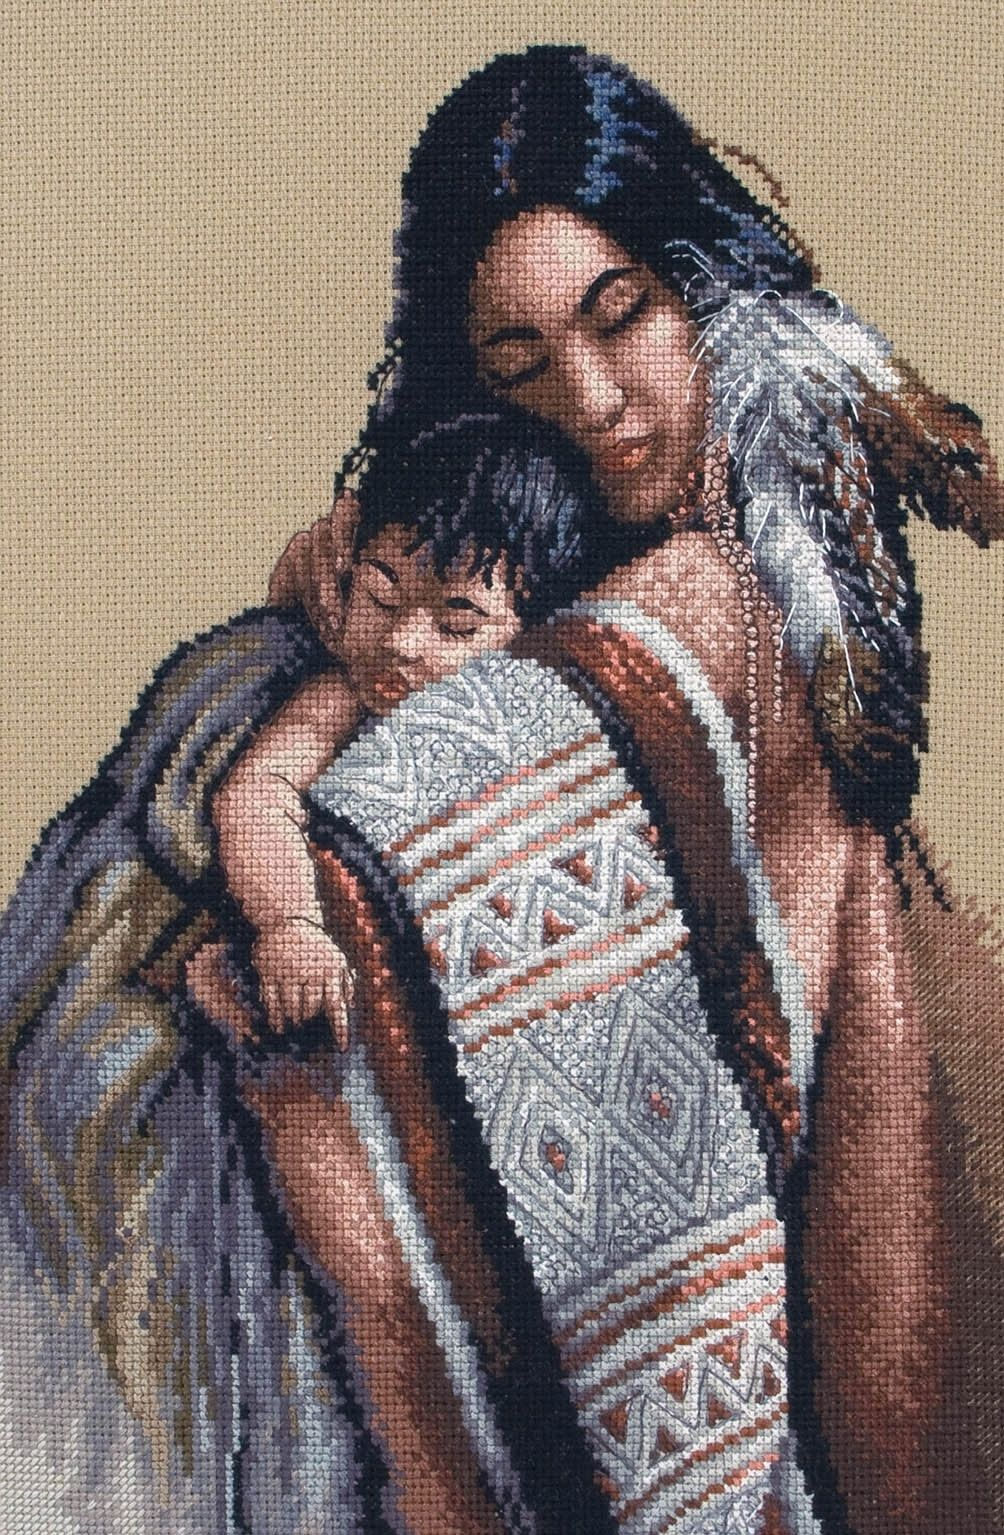 A Mother's Love - Cross Stitch Kit by Maia